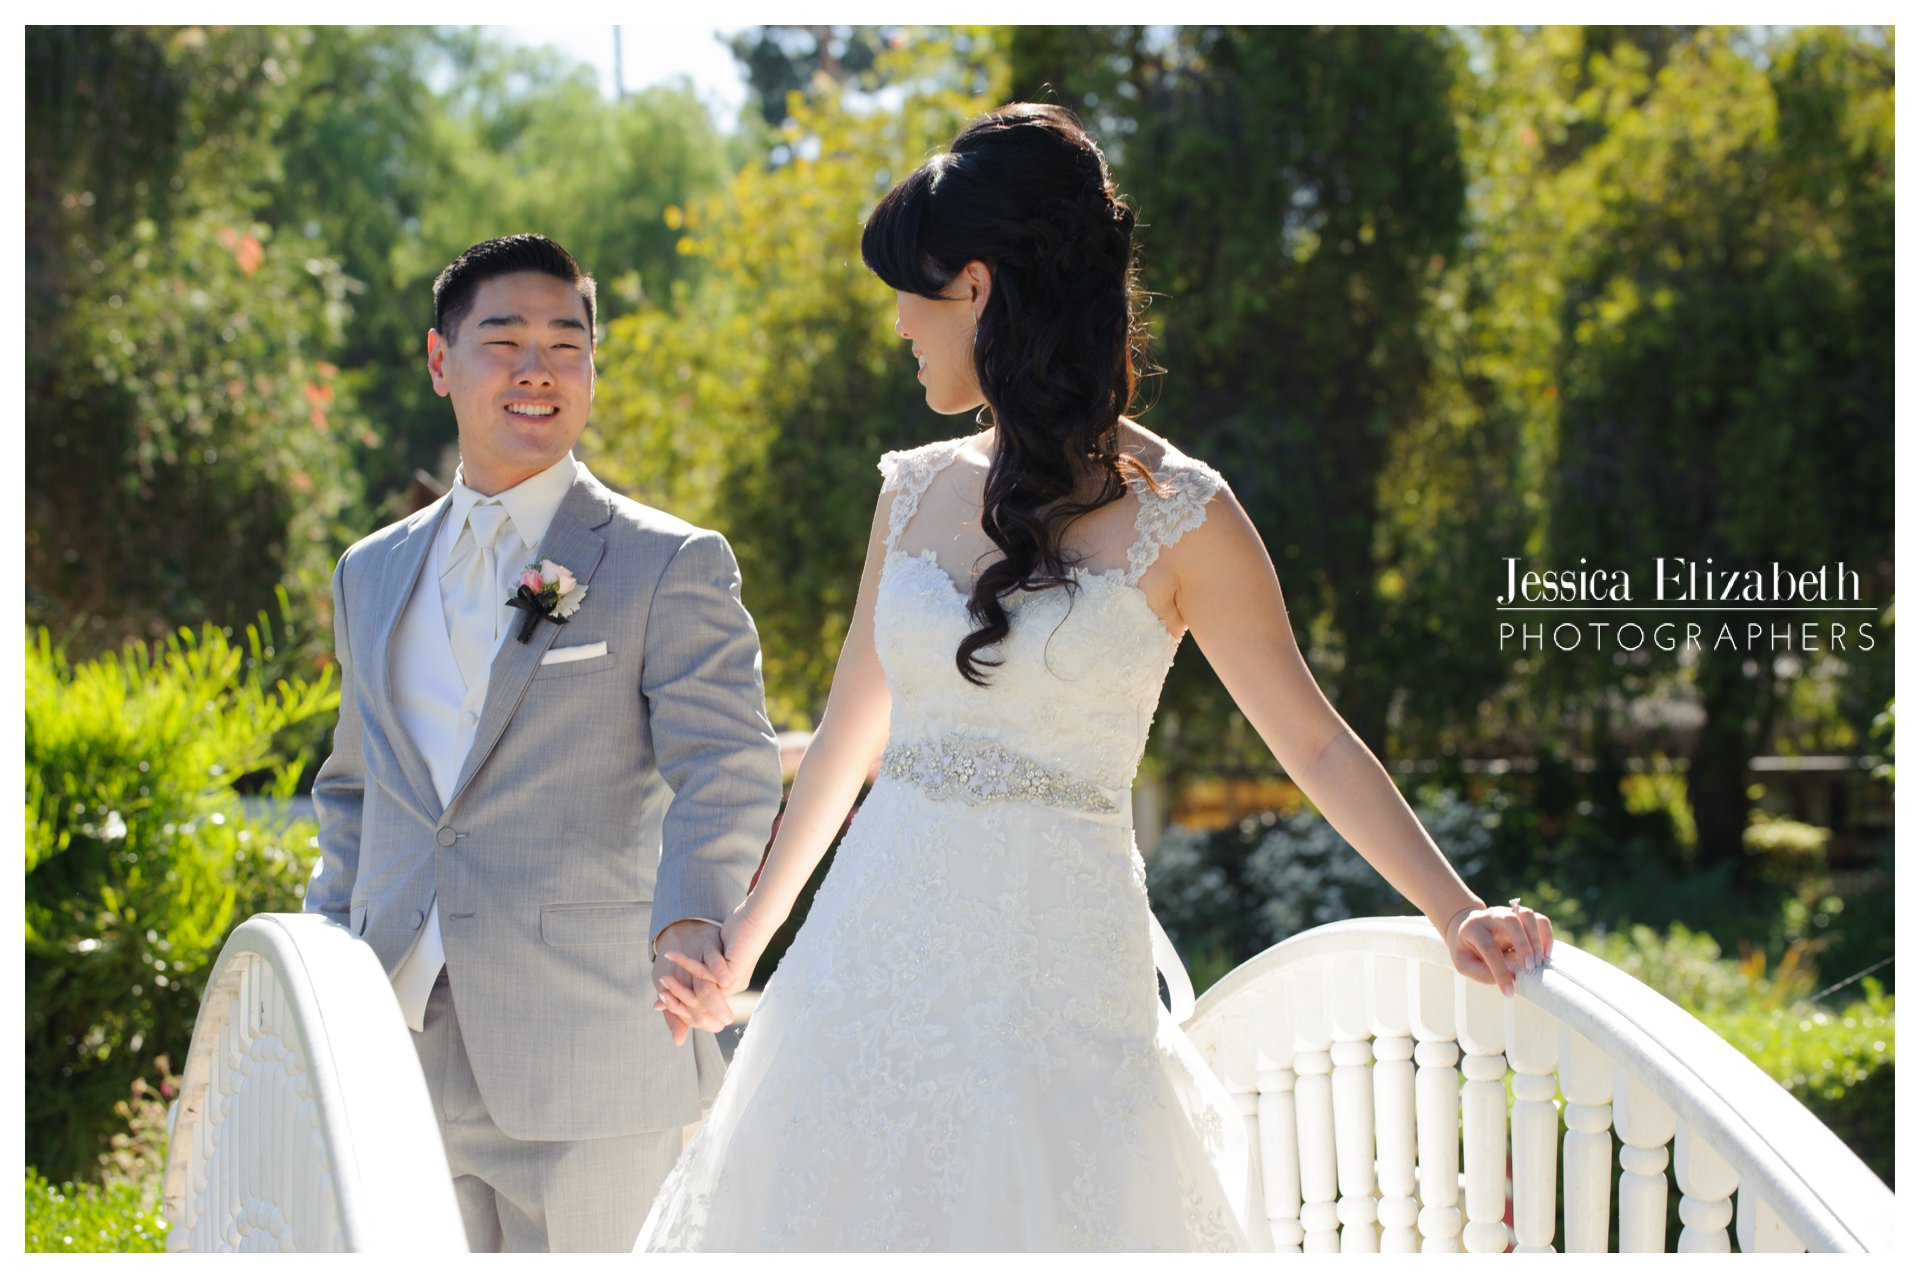 11-South Coast Botanic Garden Palos Verdes Wedding Photography by Jessica Elizabeth